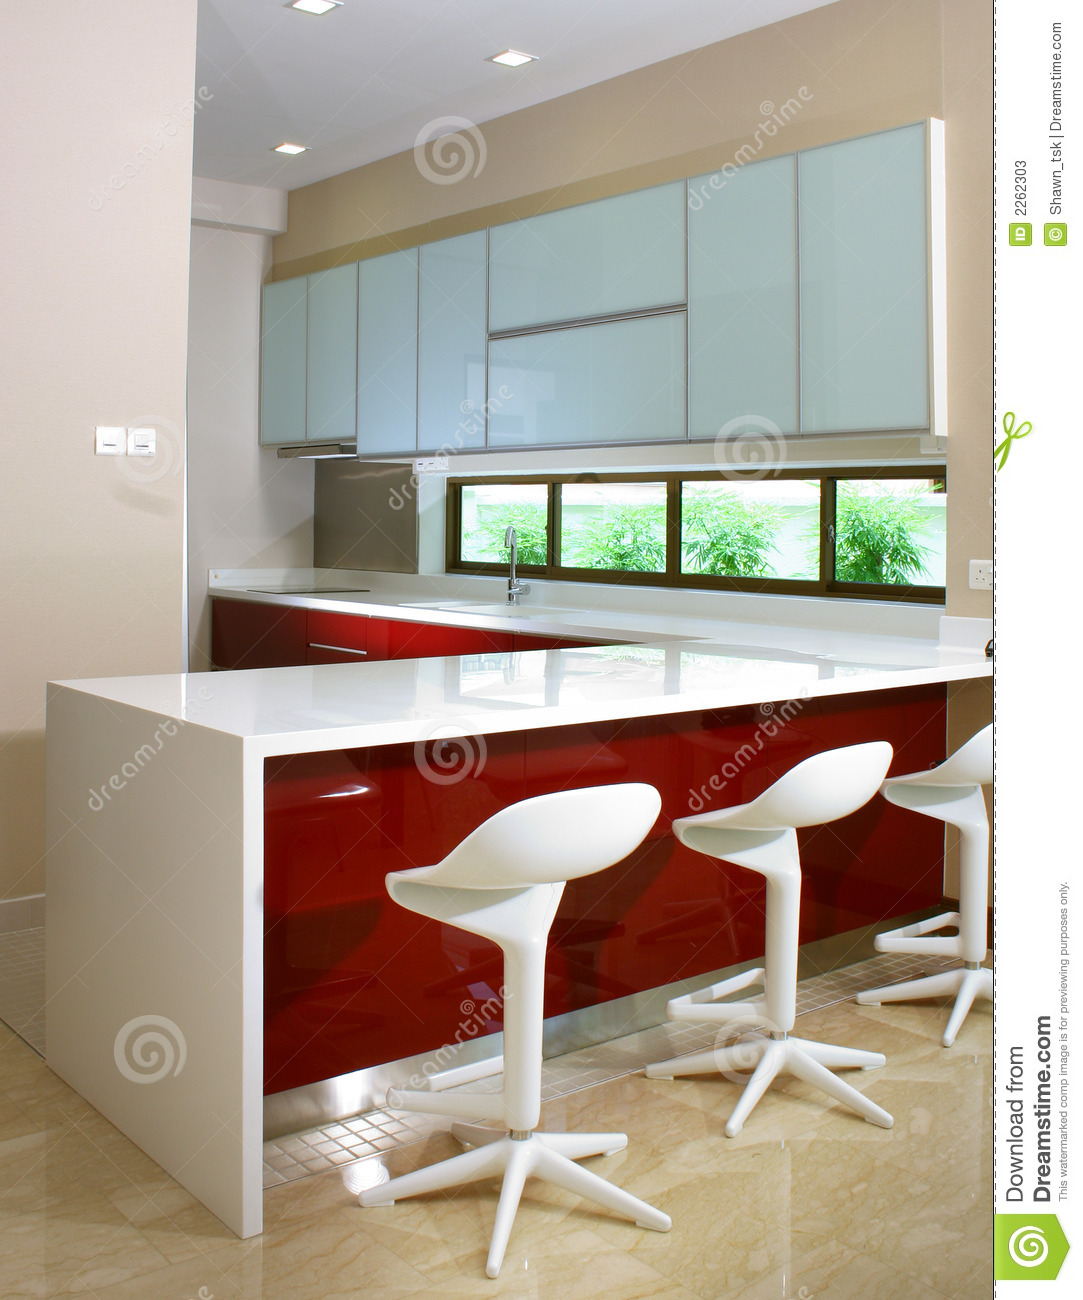 Kitchen Bar Design Pictures Kitchen And Bar Counter Stock Image Image Of Glass Contemporary